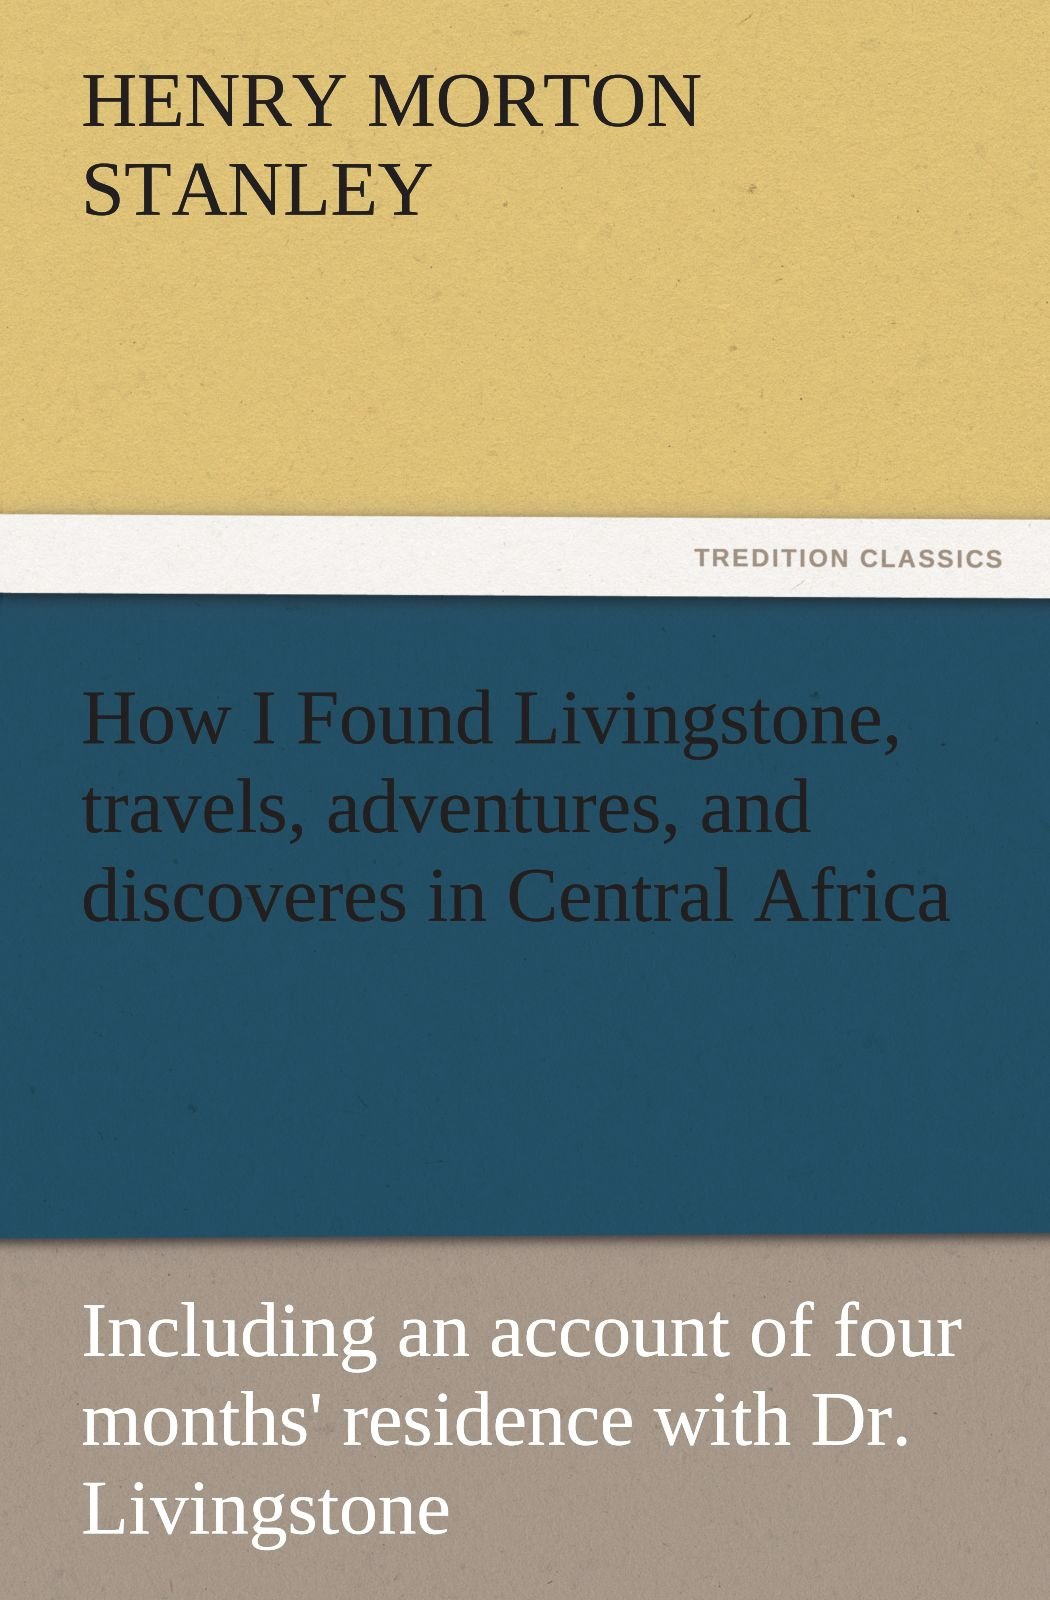 Download How I Found Livingstone, travels, adventures, and discoveres in Central Africa: Including an account of four months' residence with Dr. Livingstone (TREDITION CLASSICS) ebook